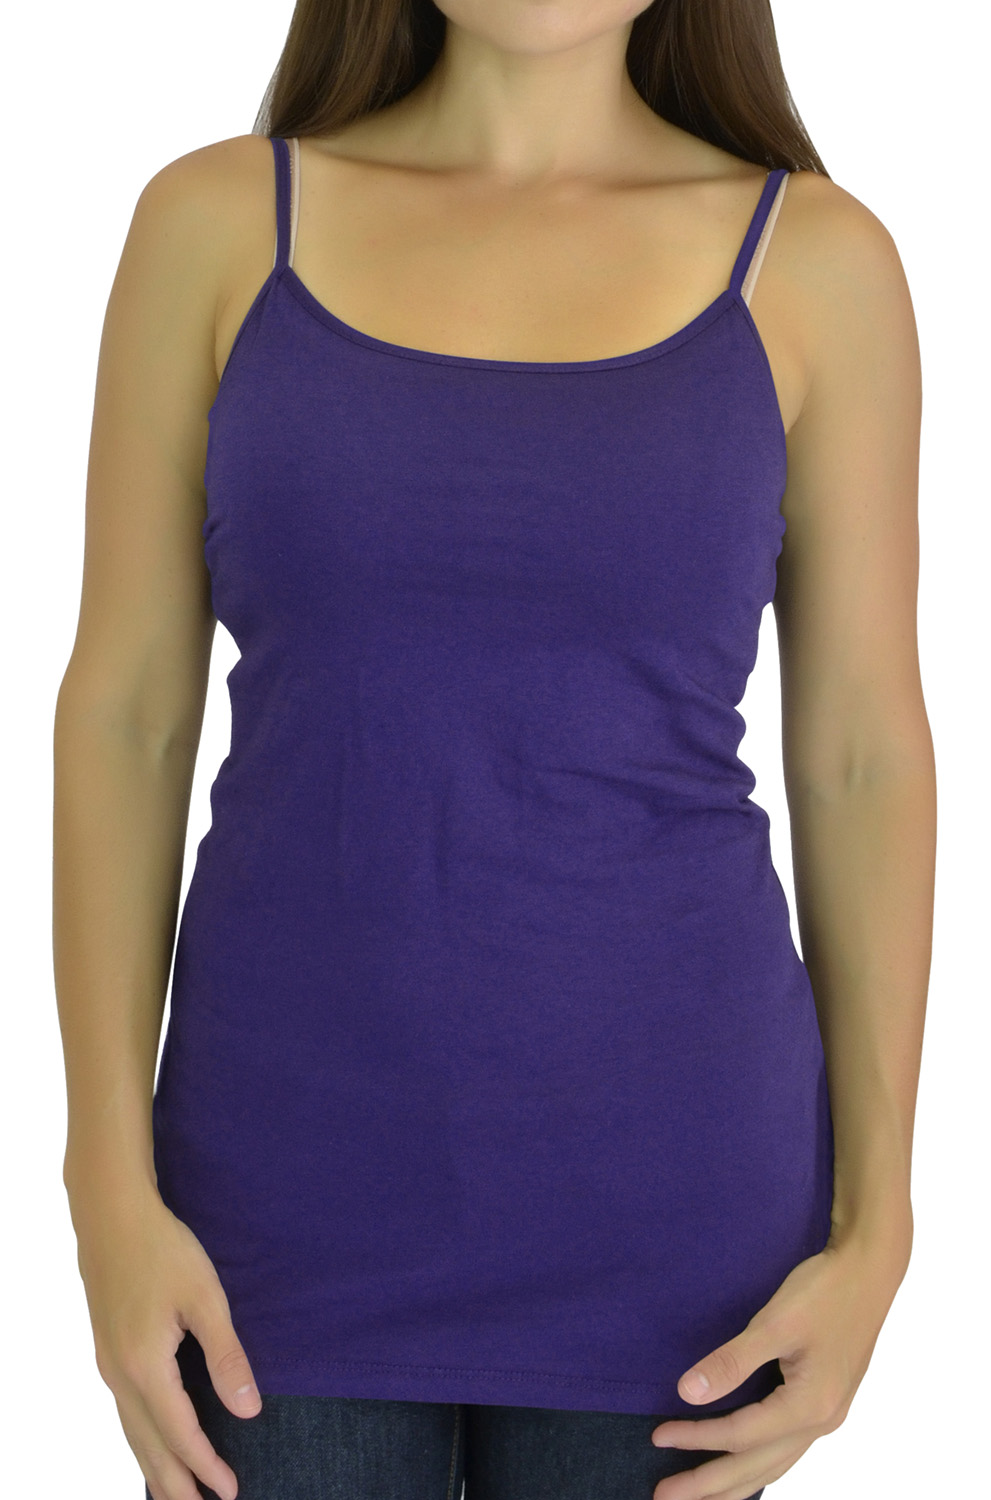 Belle Donne Women Extra Long Tank Top Built in Shelf Bra - Purple Small